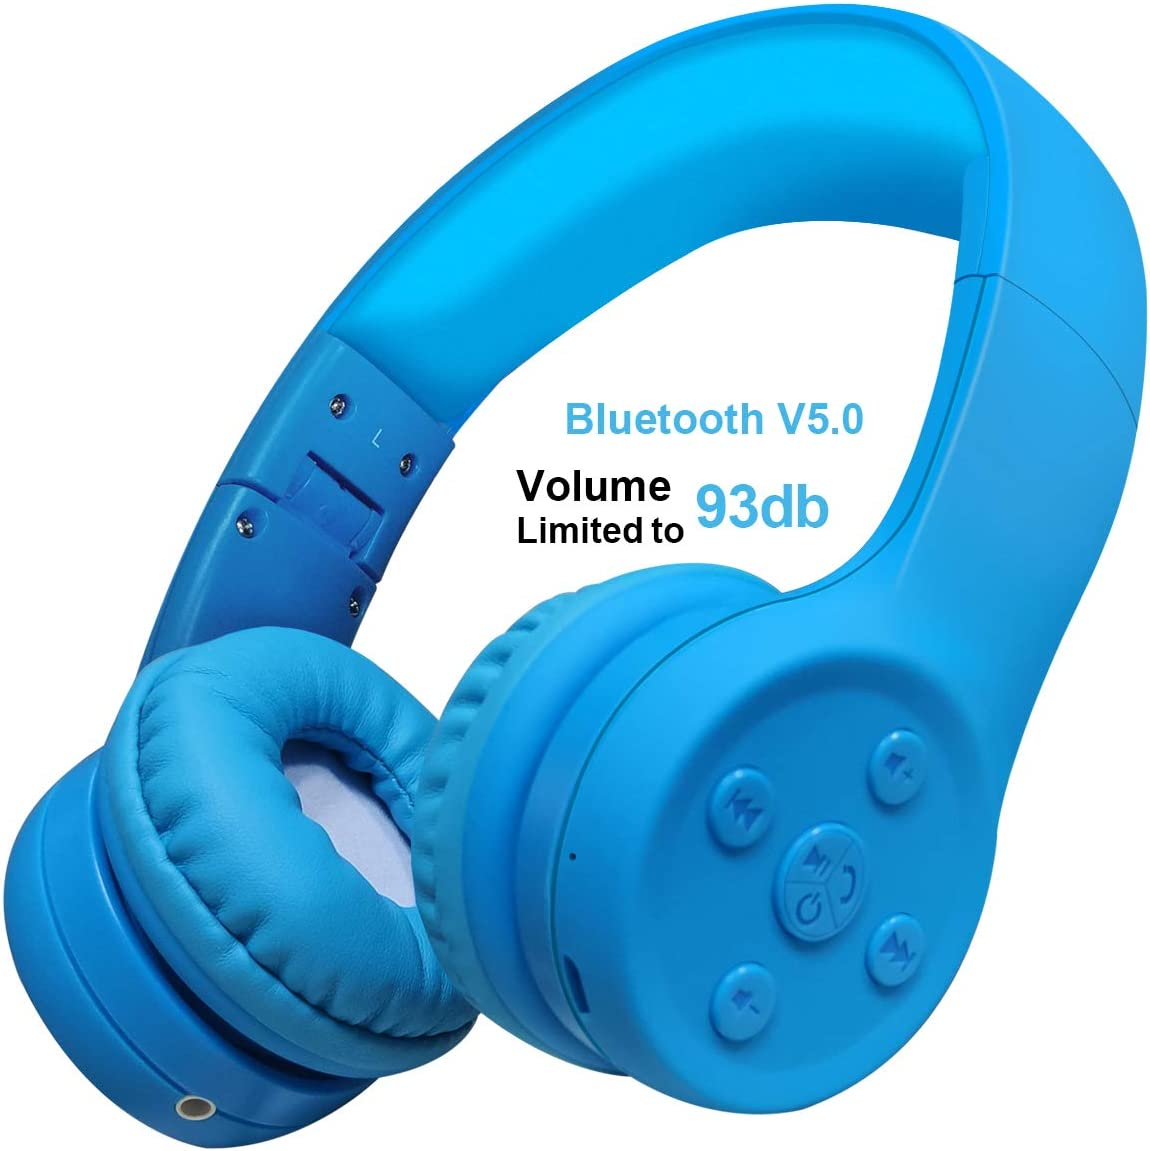 Yusonic Kids Bluetooth Headphones, Bluetooth V5.0 Foldable Volume Limited Kids Wireless Headphones with Built-in Microphone for Cell Phones TV Toddler Tablet Game School Boys Girls Blue 2